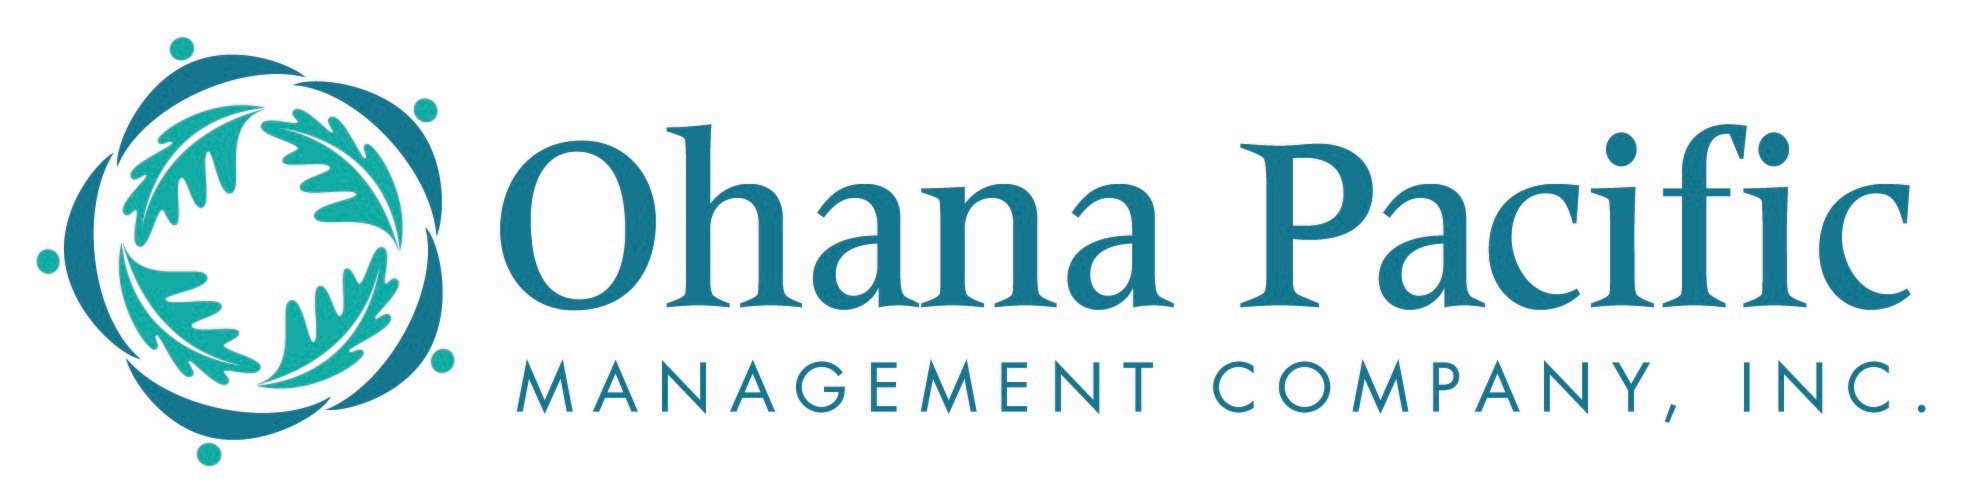 Ohana Pacific Management